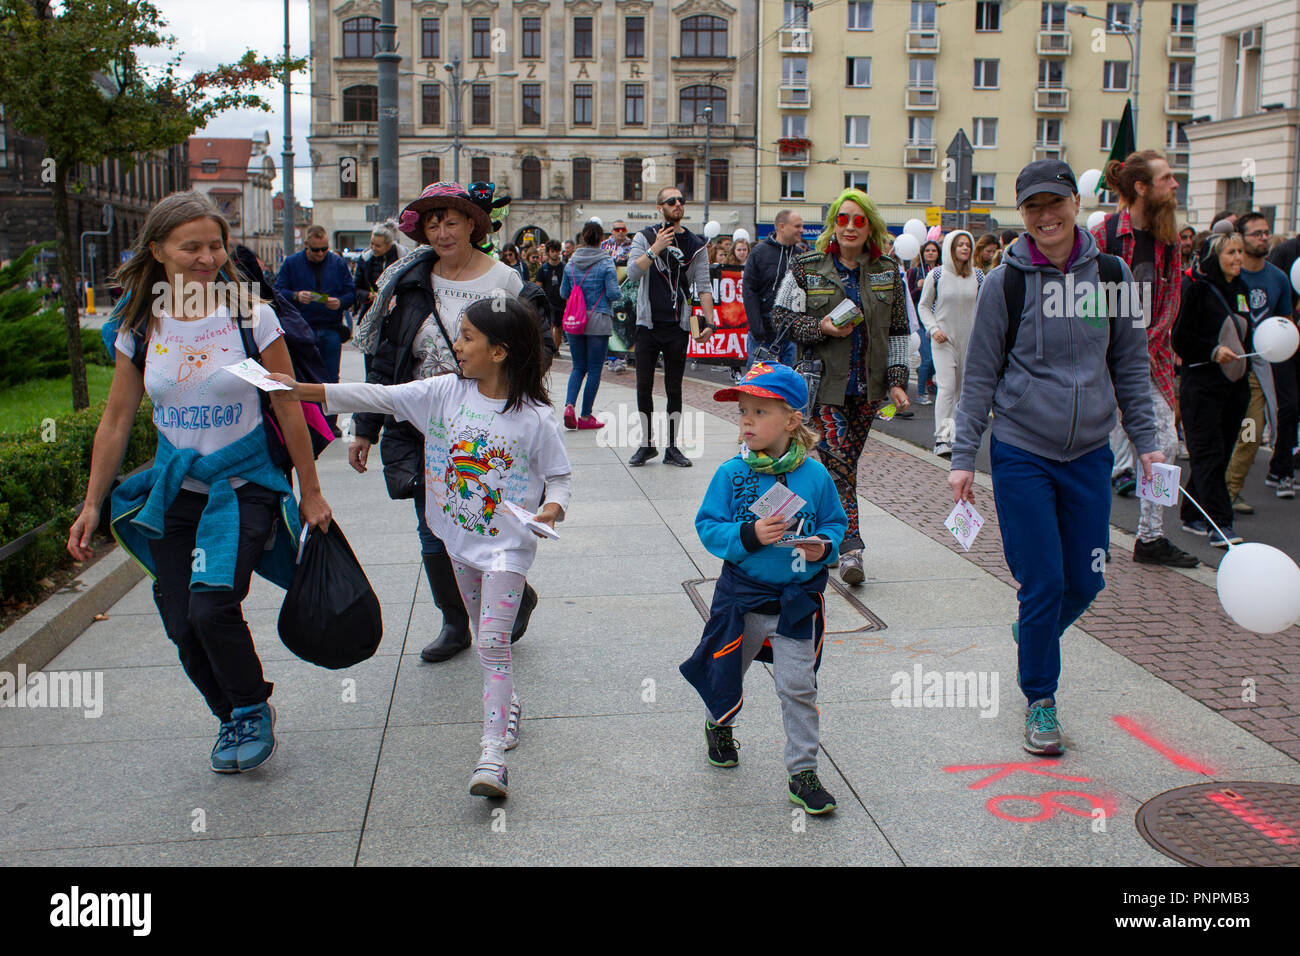 Poznan, Poland 22nd September 2018. Animal Love Parade. Nationwide parade for the rights and liberation of animals. A positive colorful parade of animal rights defenders. Credit: Slawomir Kowalewski/Alamy Live News - Stock Image